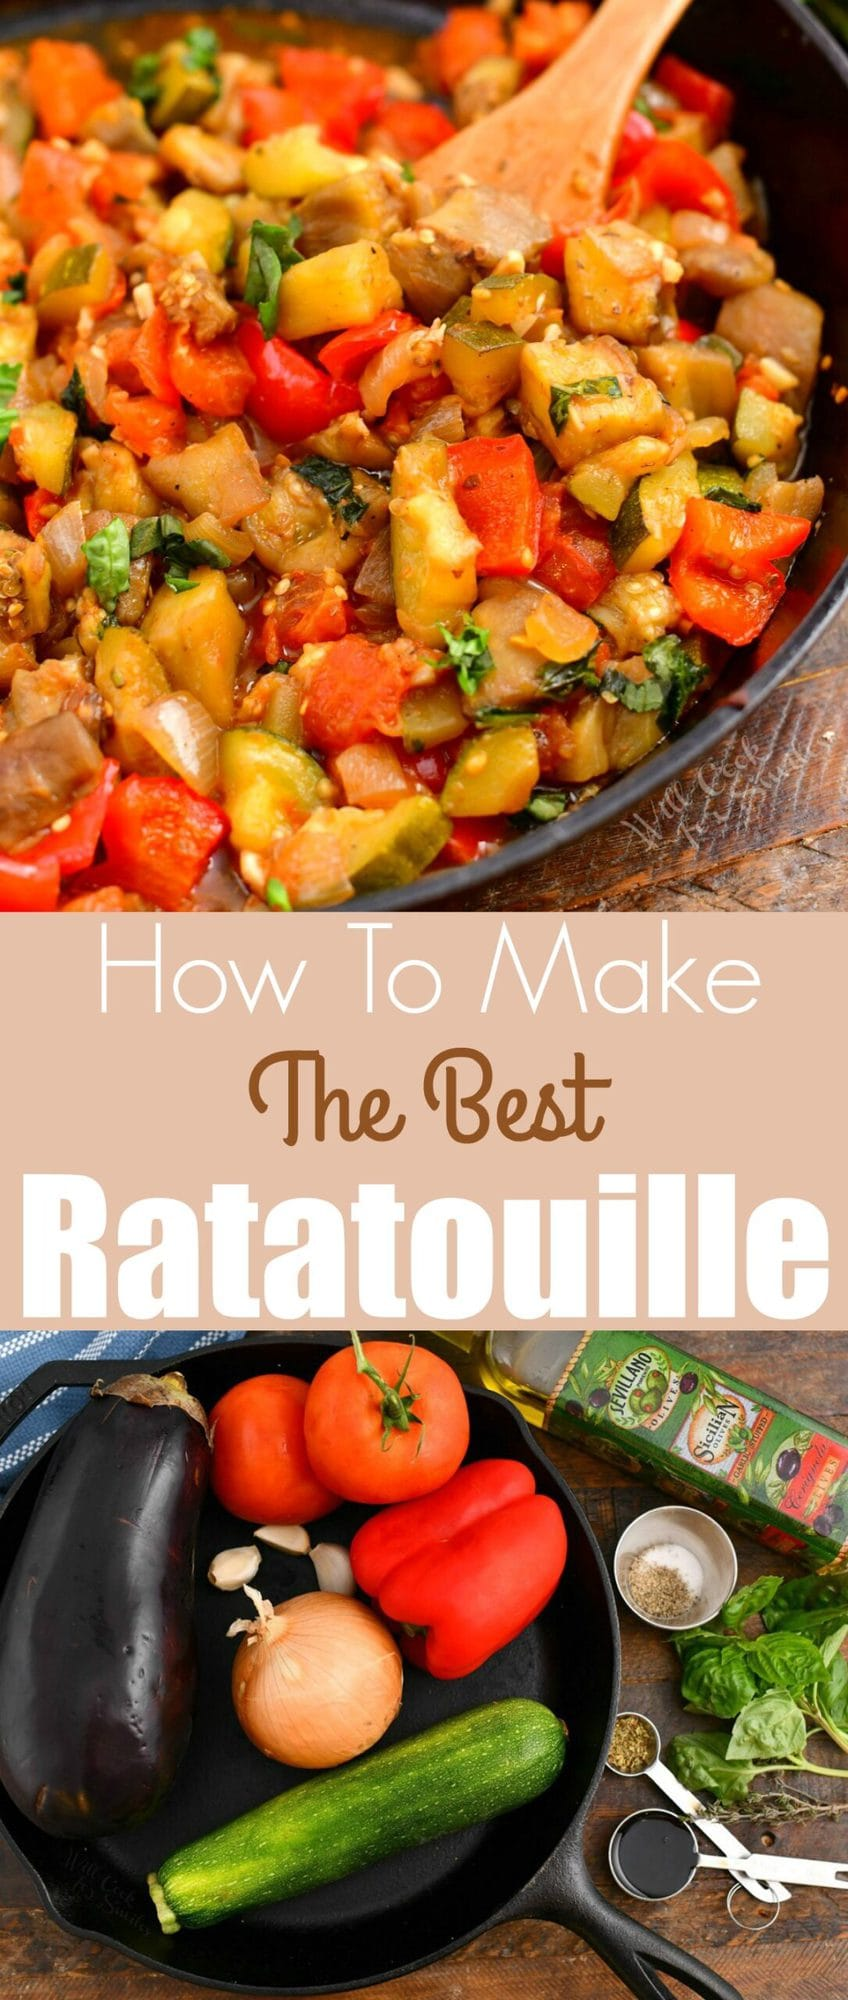 titled photo: How to Make the Best Ratatouille (photo of ratatouille ingredients and the finished dish